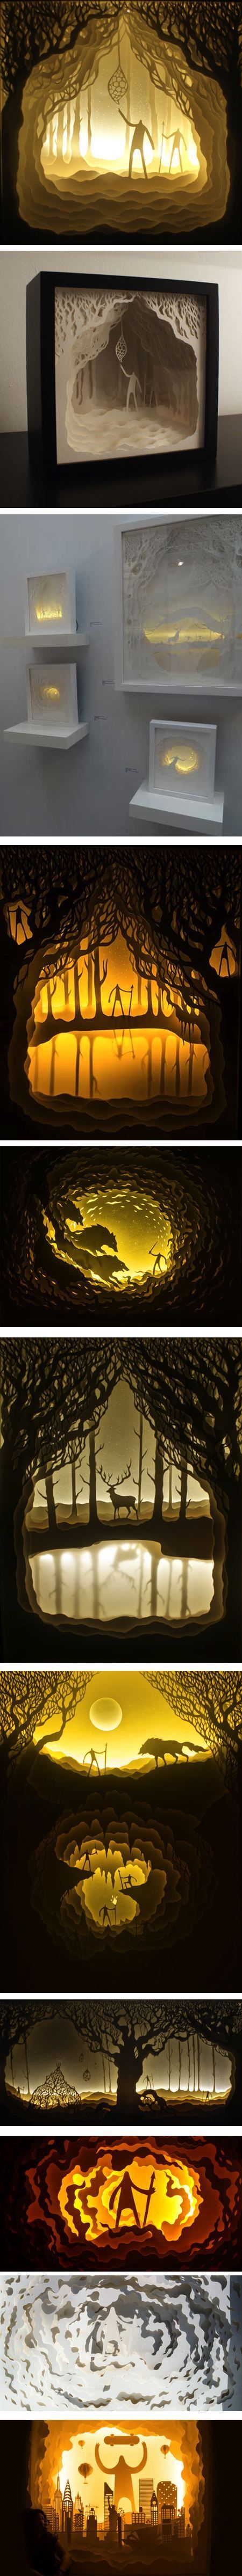 Illuminated cut paper shadowboxes by Harikrishnan Panicker and Deepti Nair | via Lines & Colors